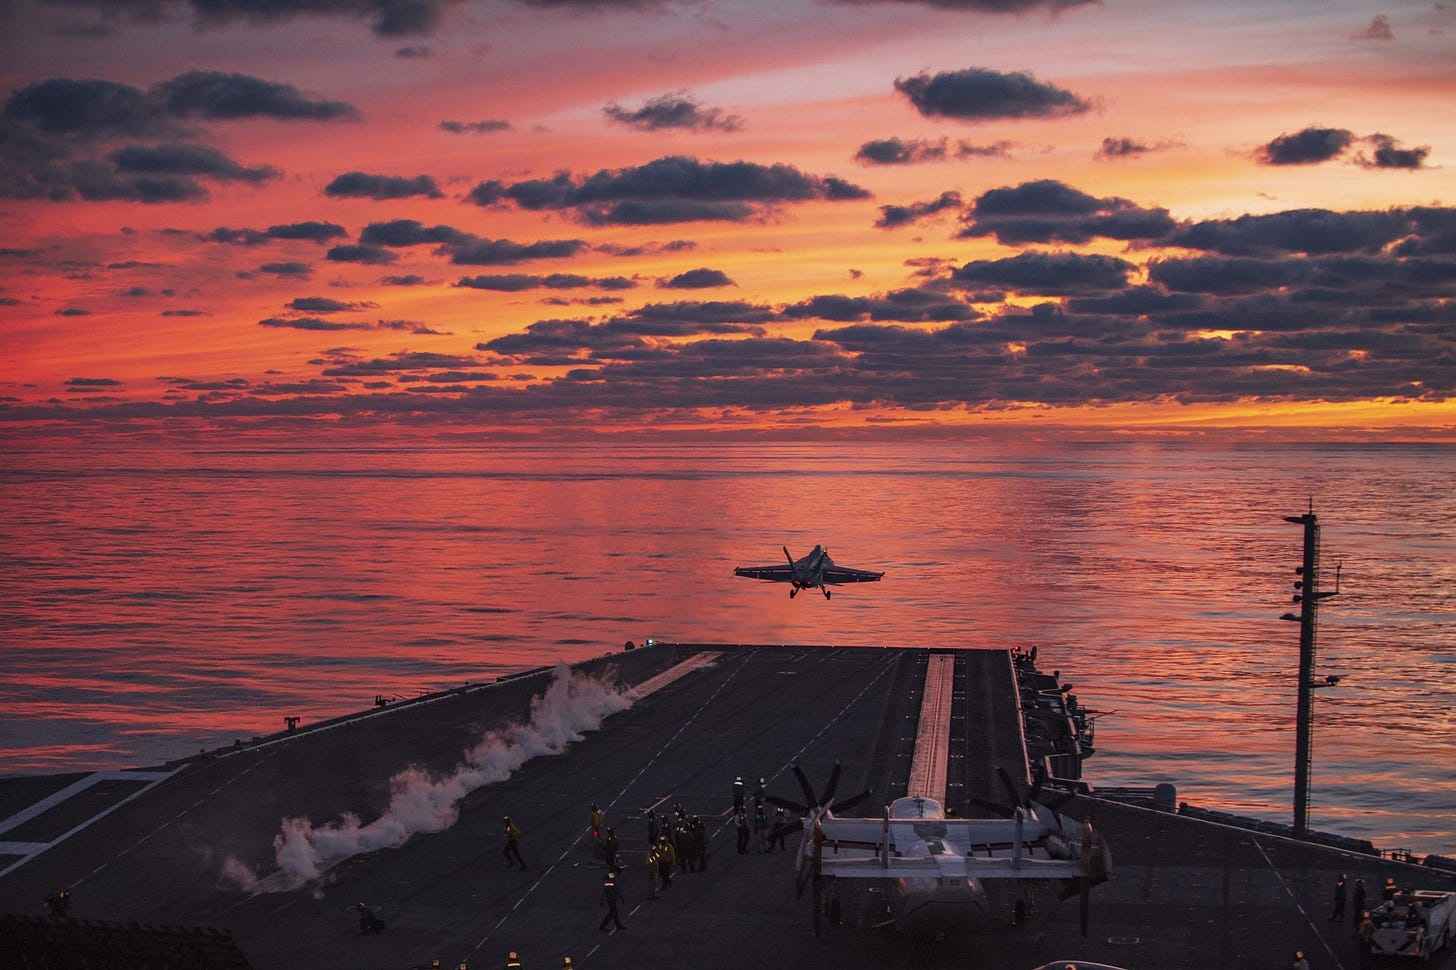 A plane flies off the deck of the Eisenhower carrier, leaving a small trail of steam.